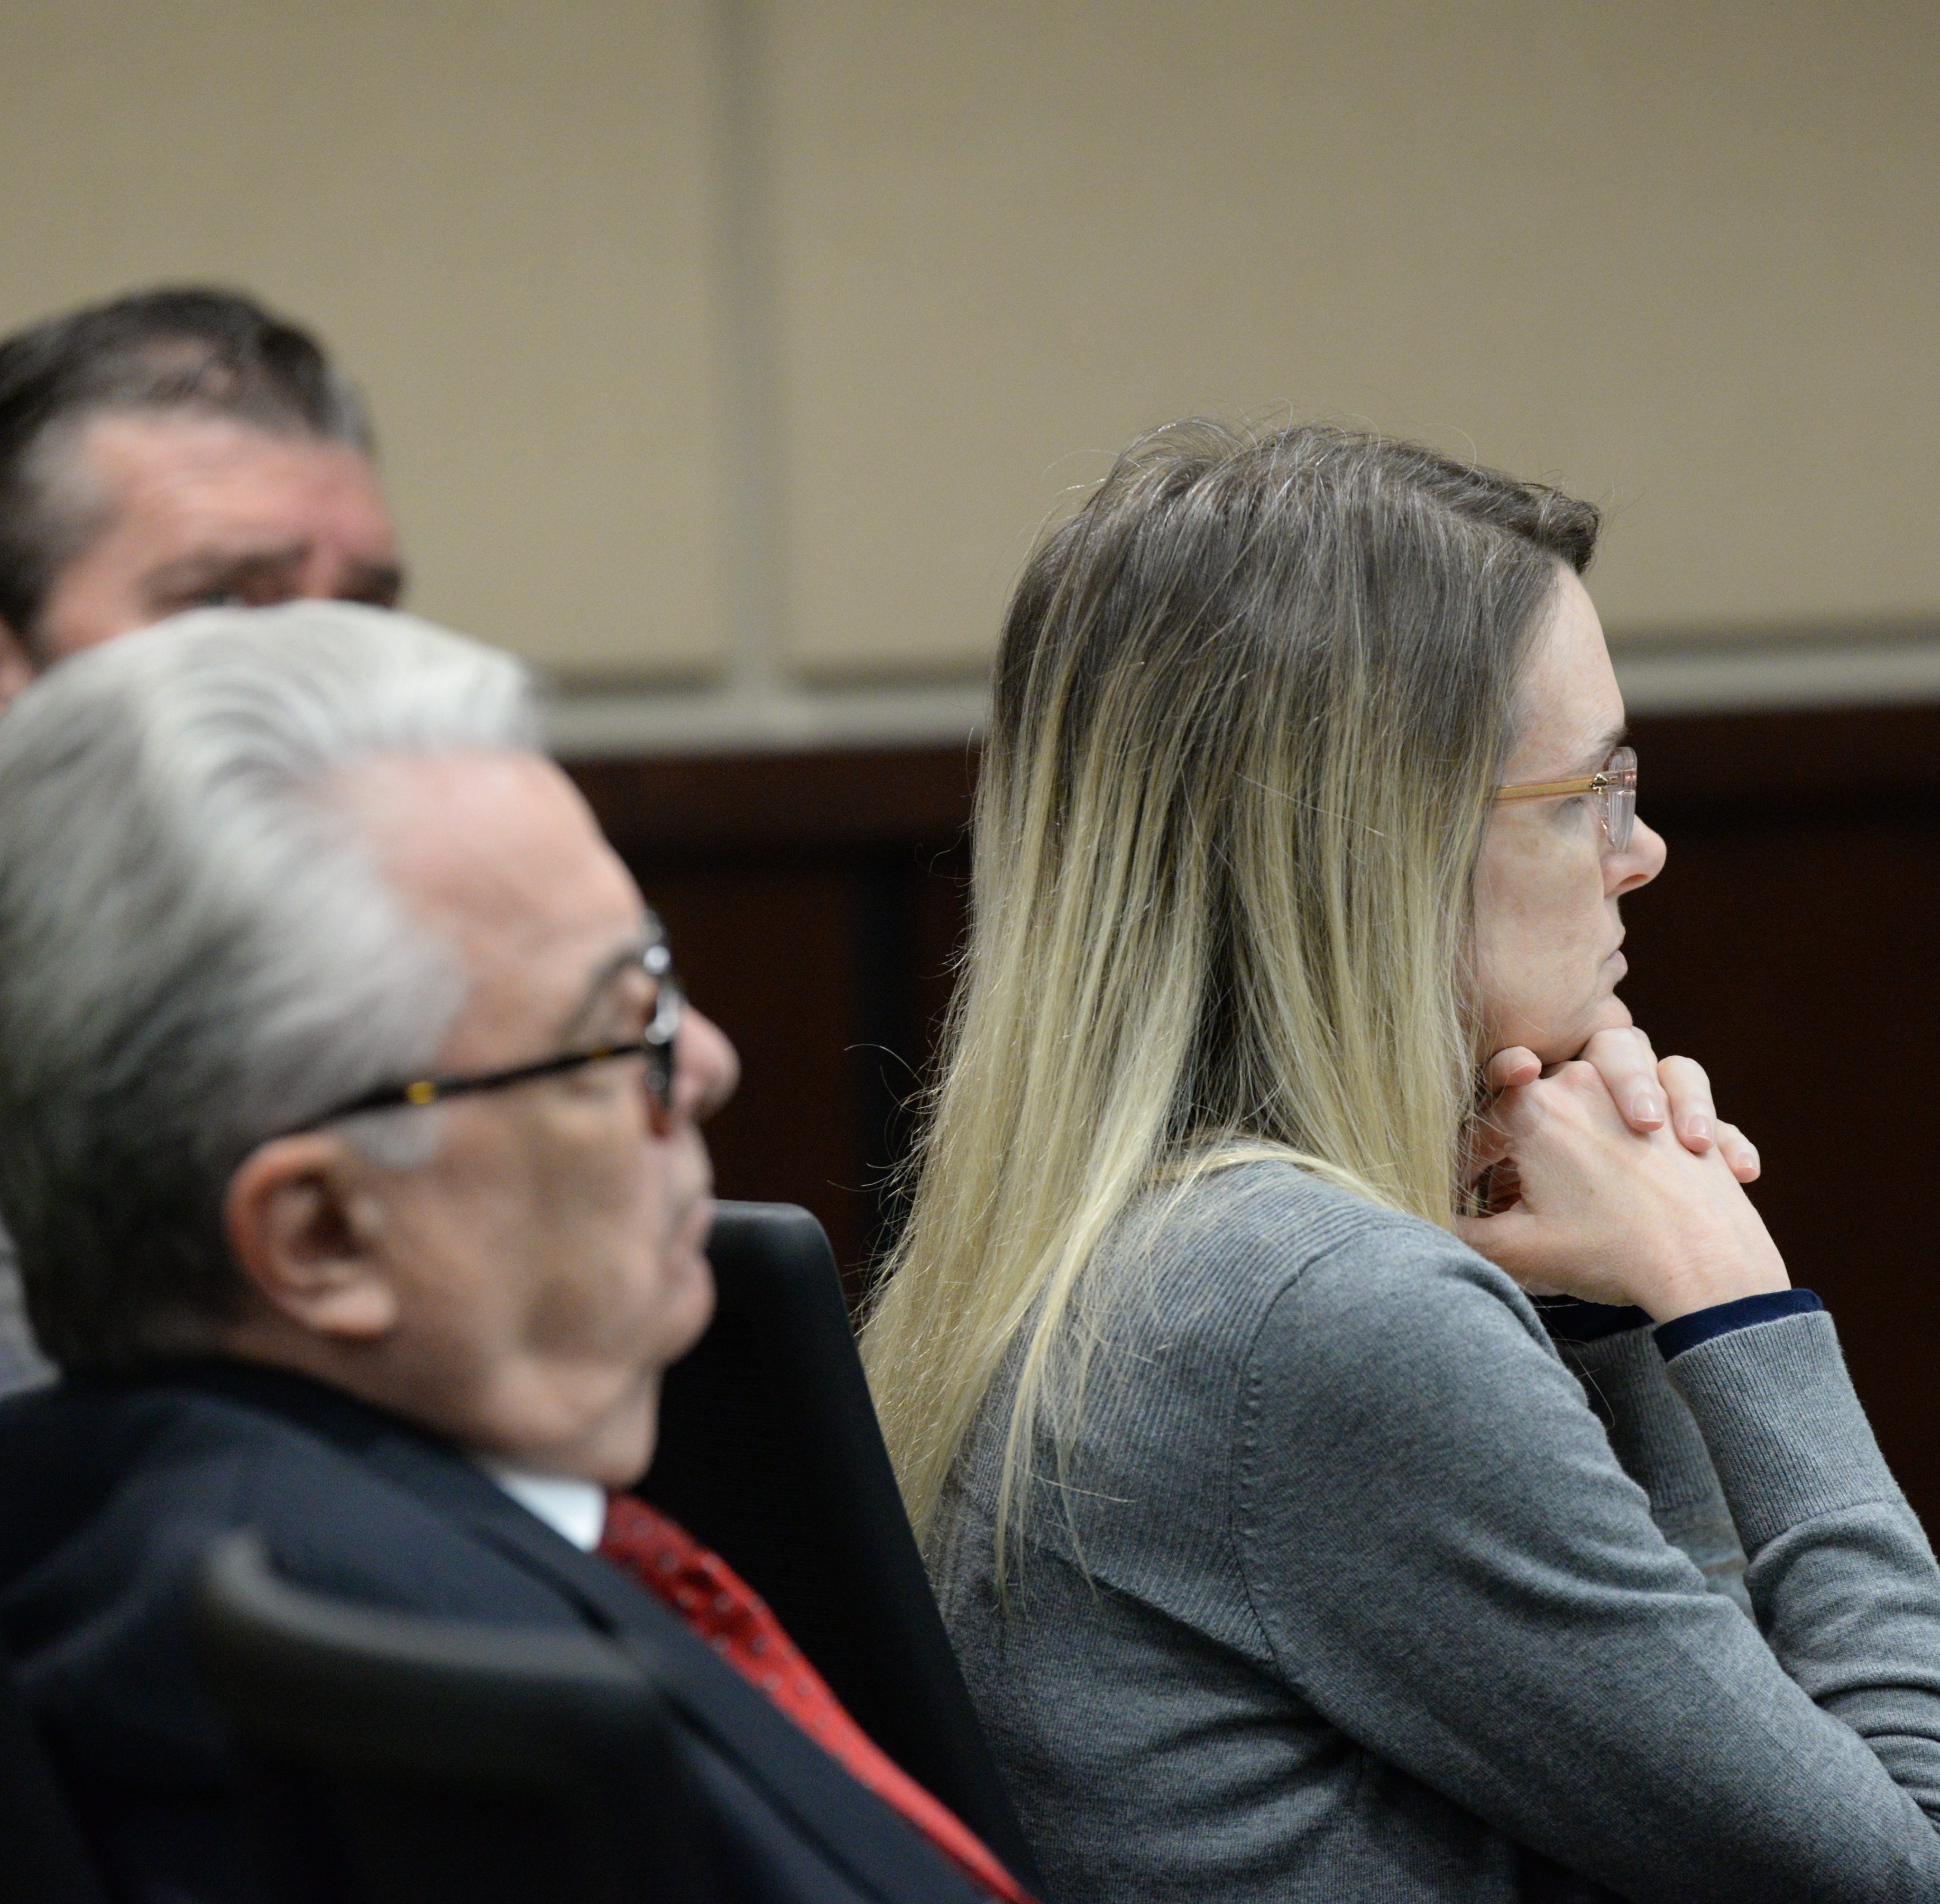 Denise Williams trial: Jury begins deliberations in Mike Williams murder